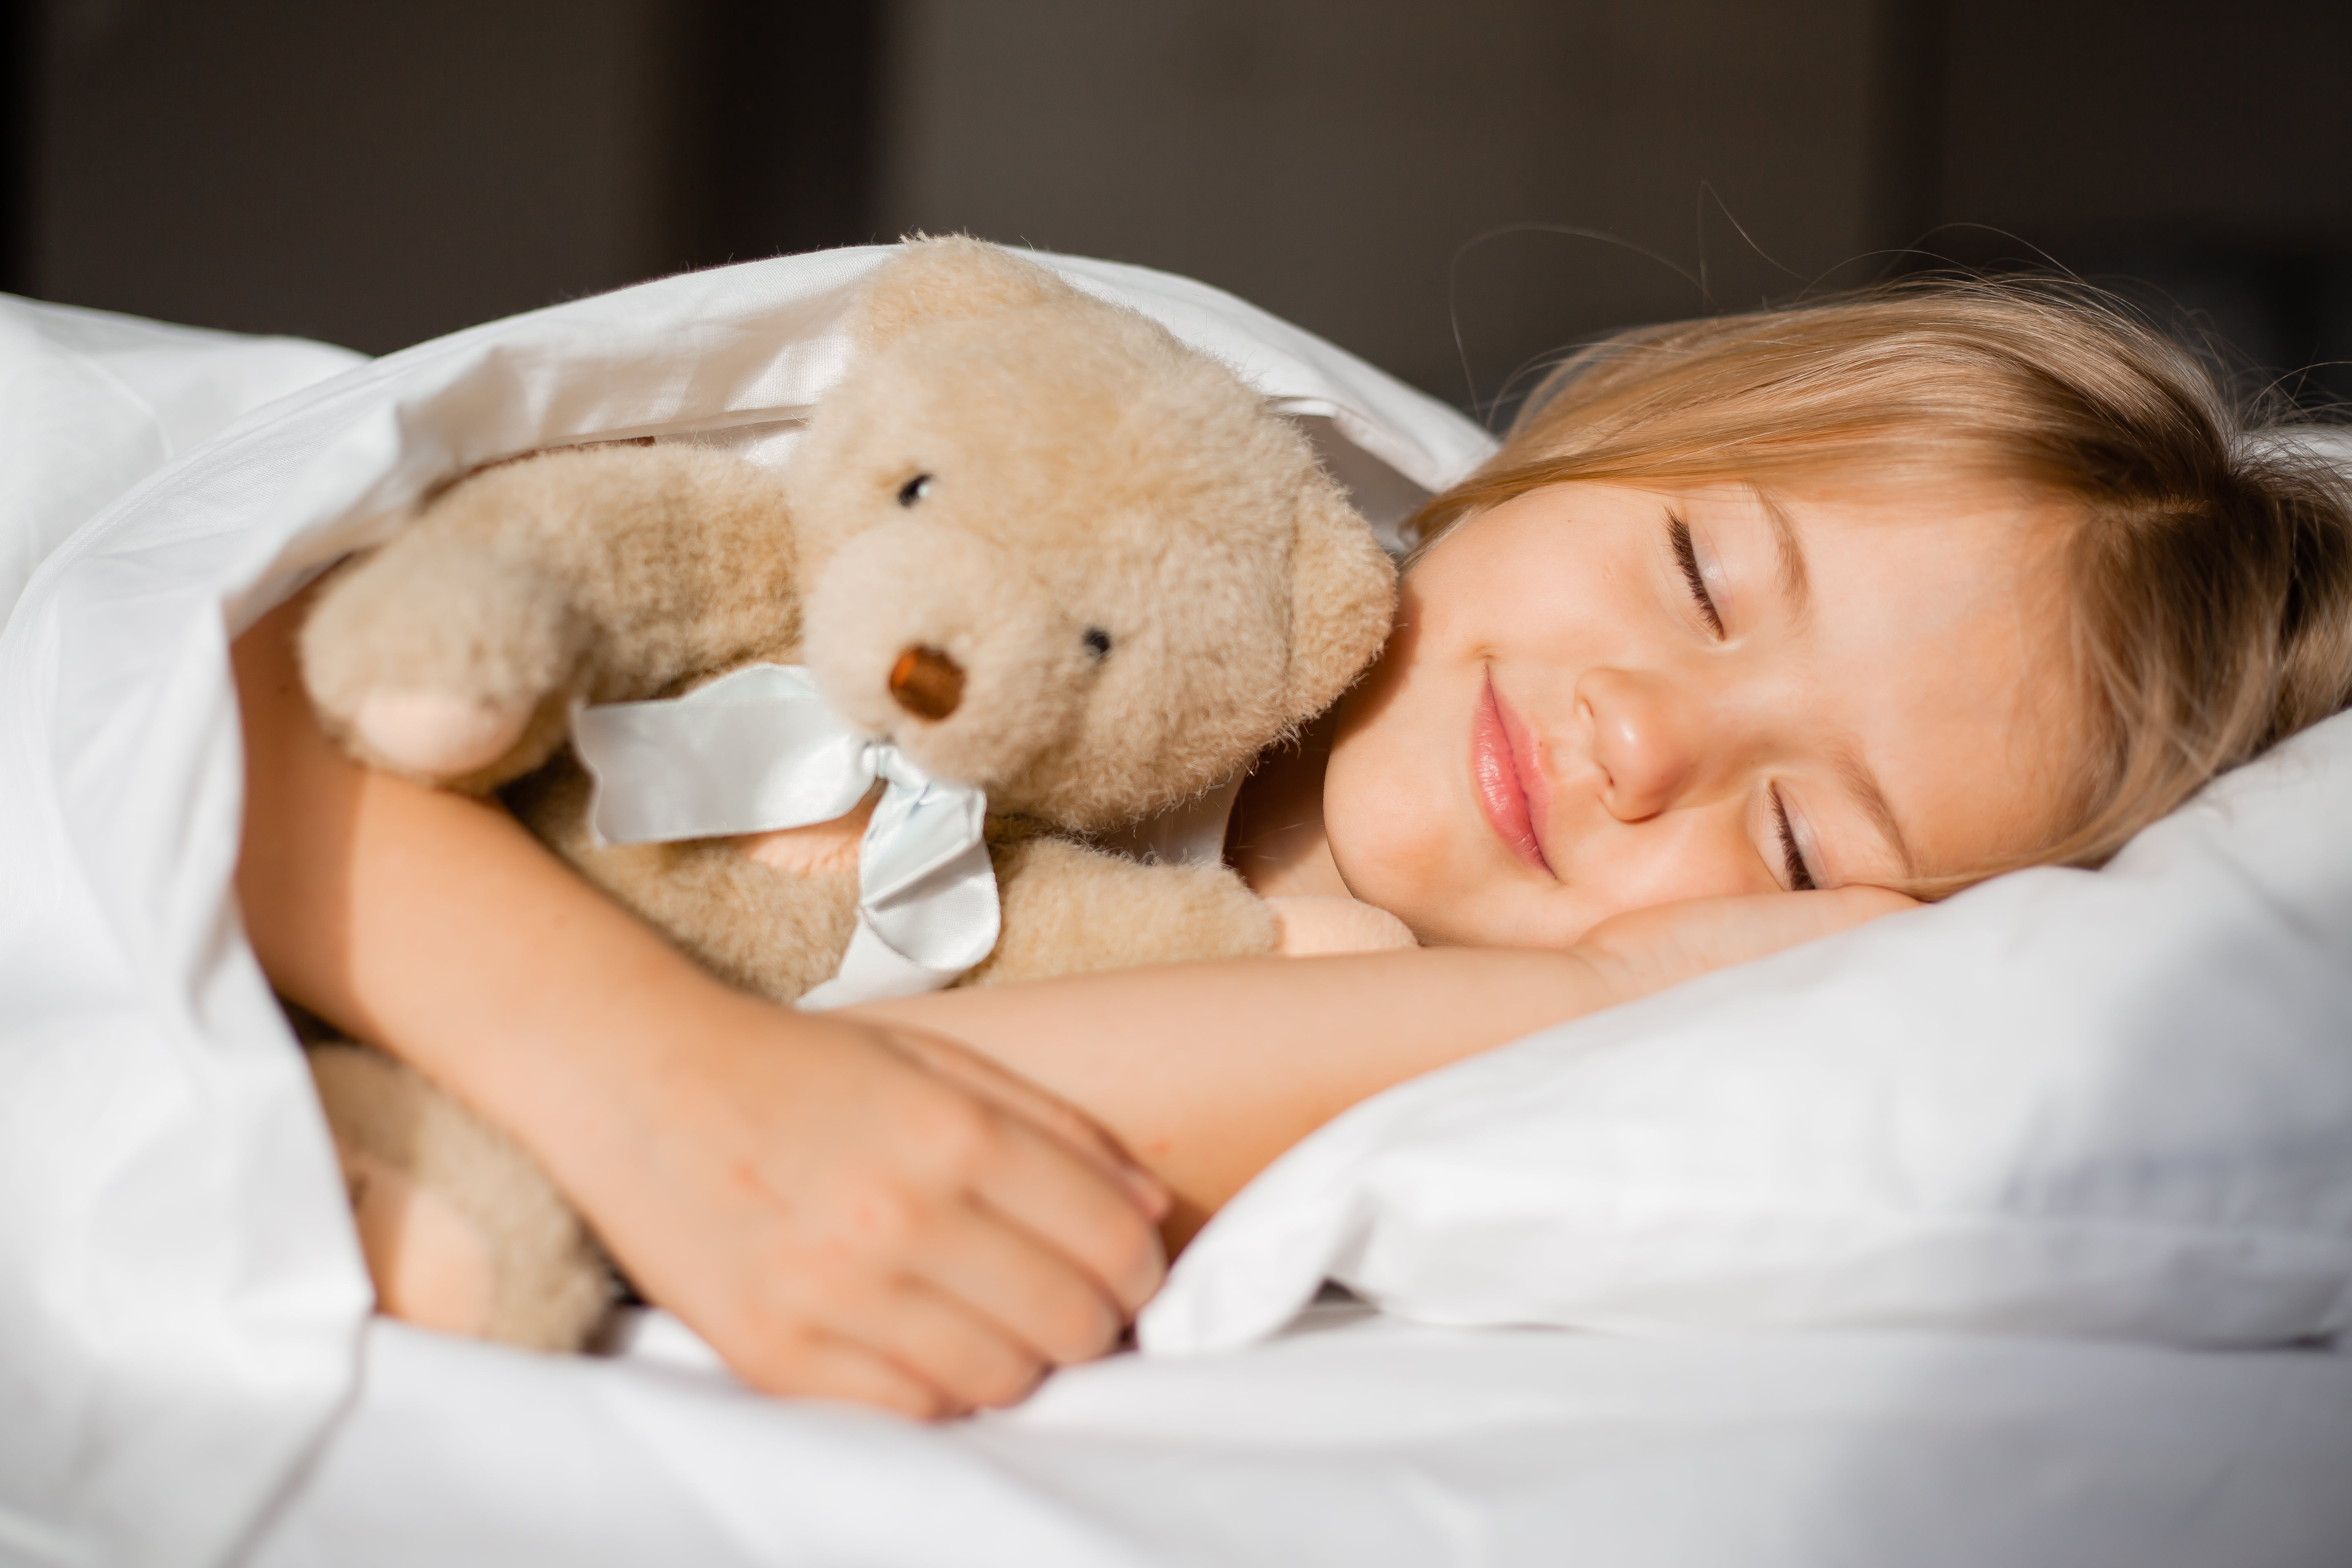 Dream Worlds: Using Play Therapy in the Treatment of Childhood Sleep Disturbance